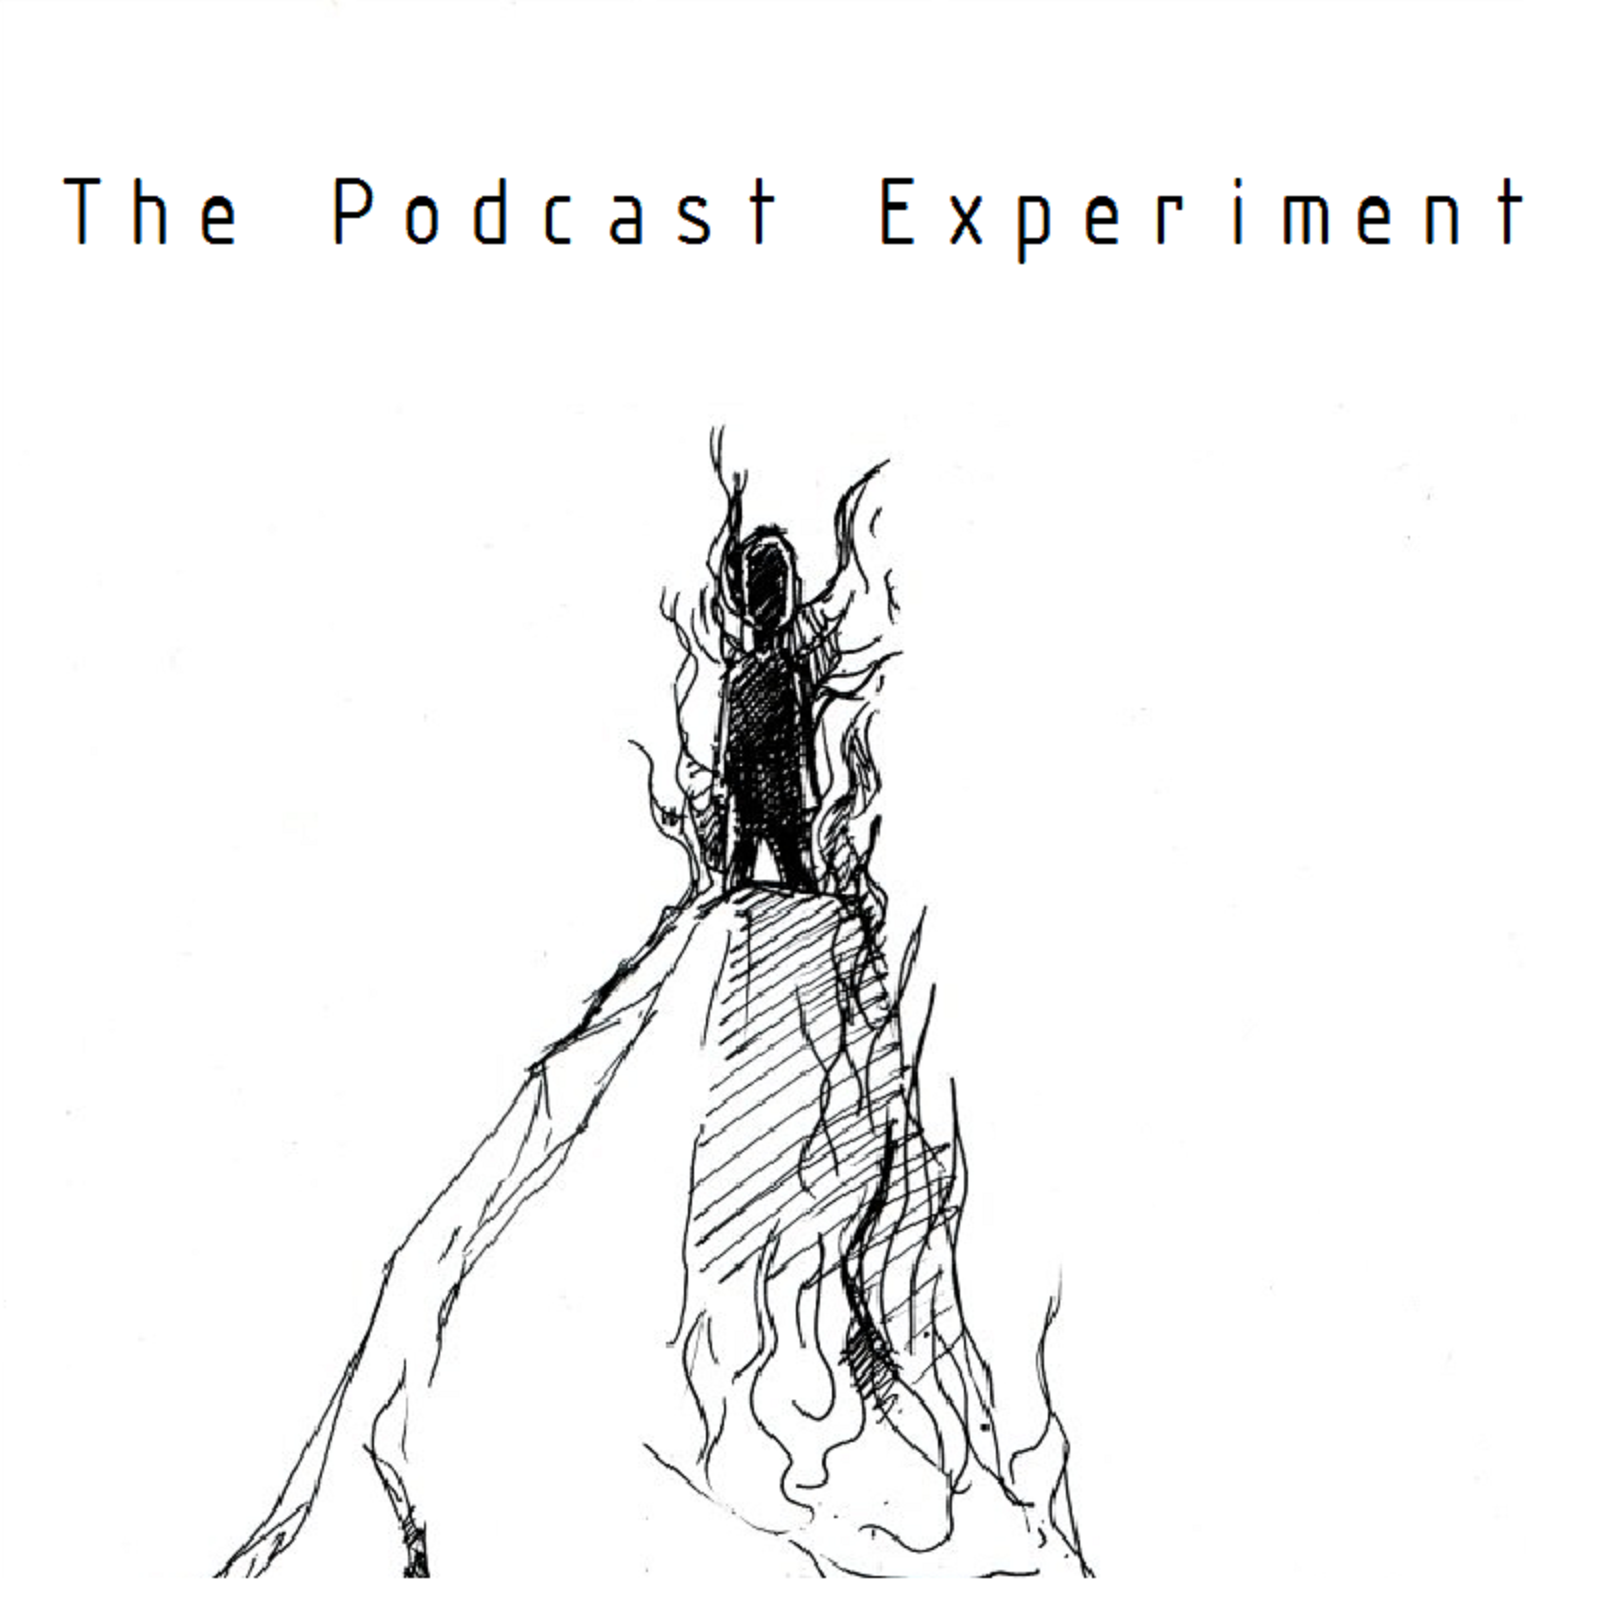 joreilly86 - The Podcast Experiment